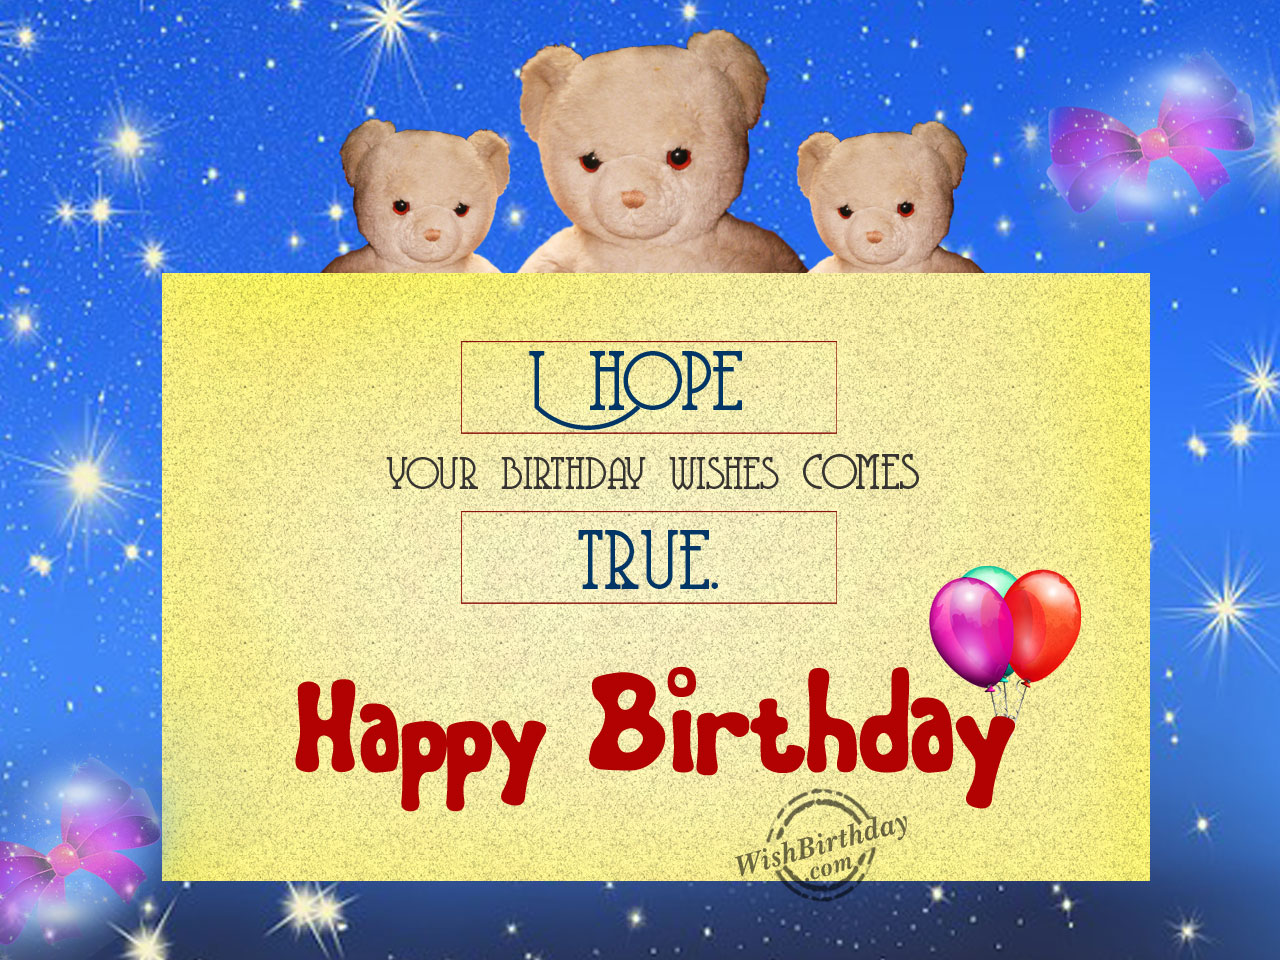 Birthday Wishes With Teddy Bear - Birthday Images, Pictures